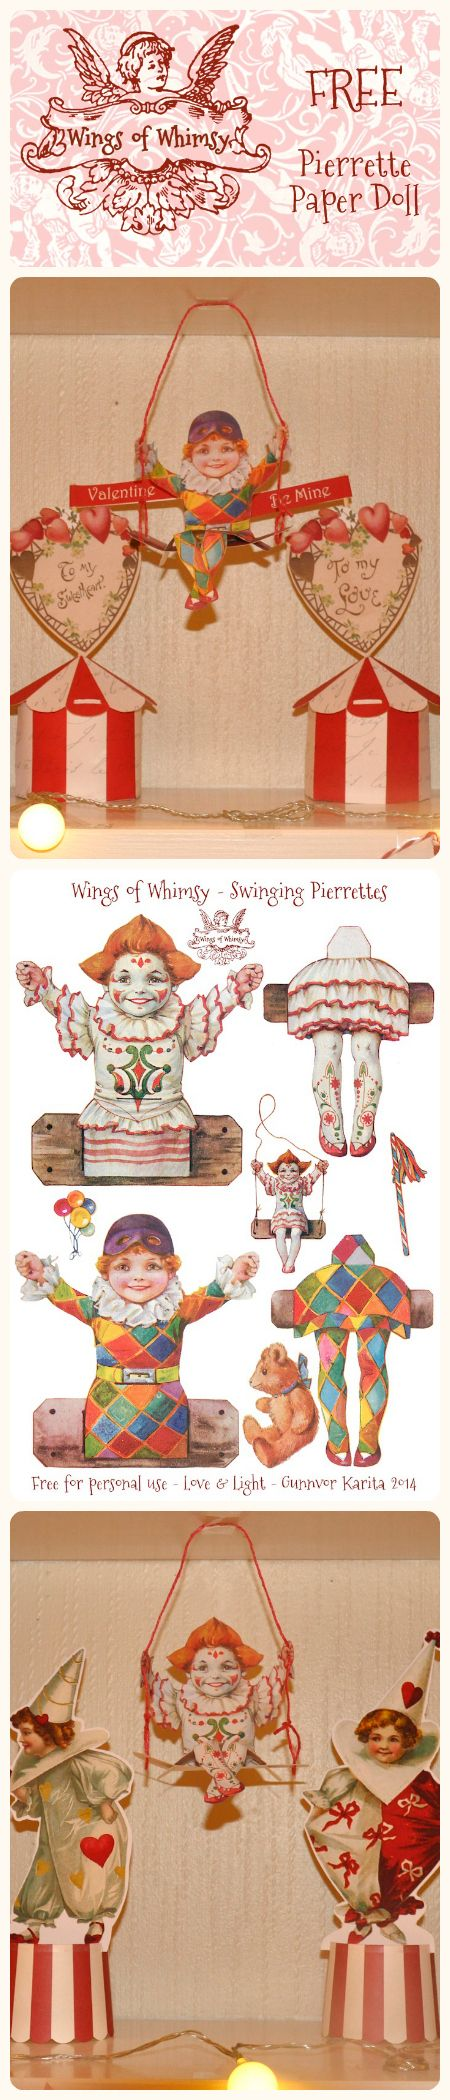 Wings of Whimsy: Vintage Love Circus Swinging Pierrettes